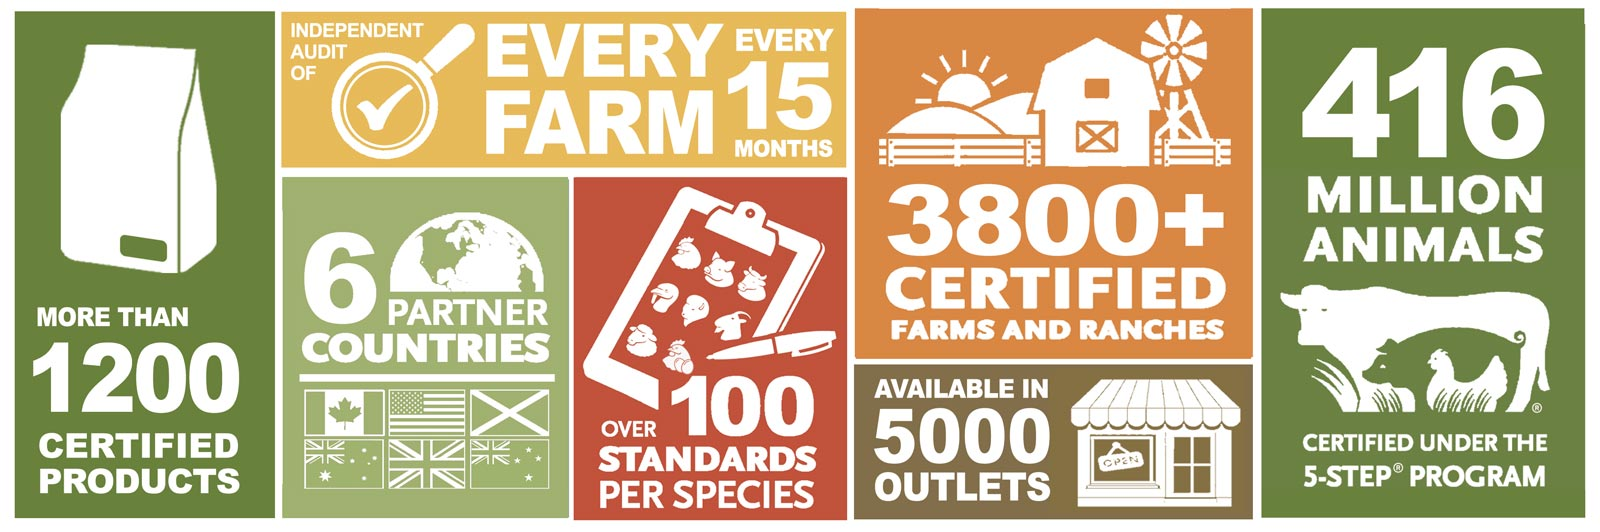 Important Farm Animal Welfare Statistics for Global Animal Partnership